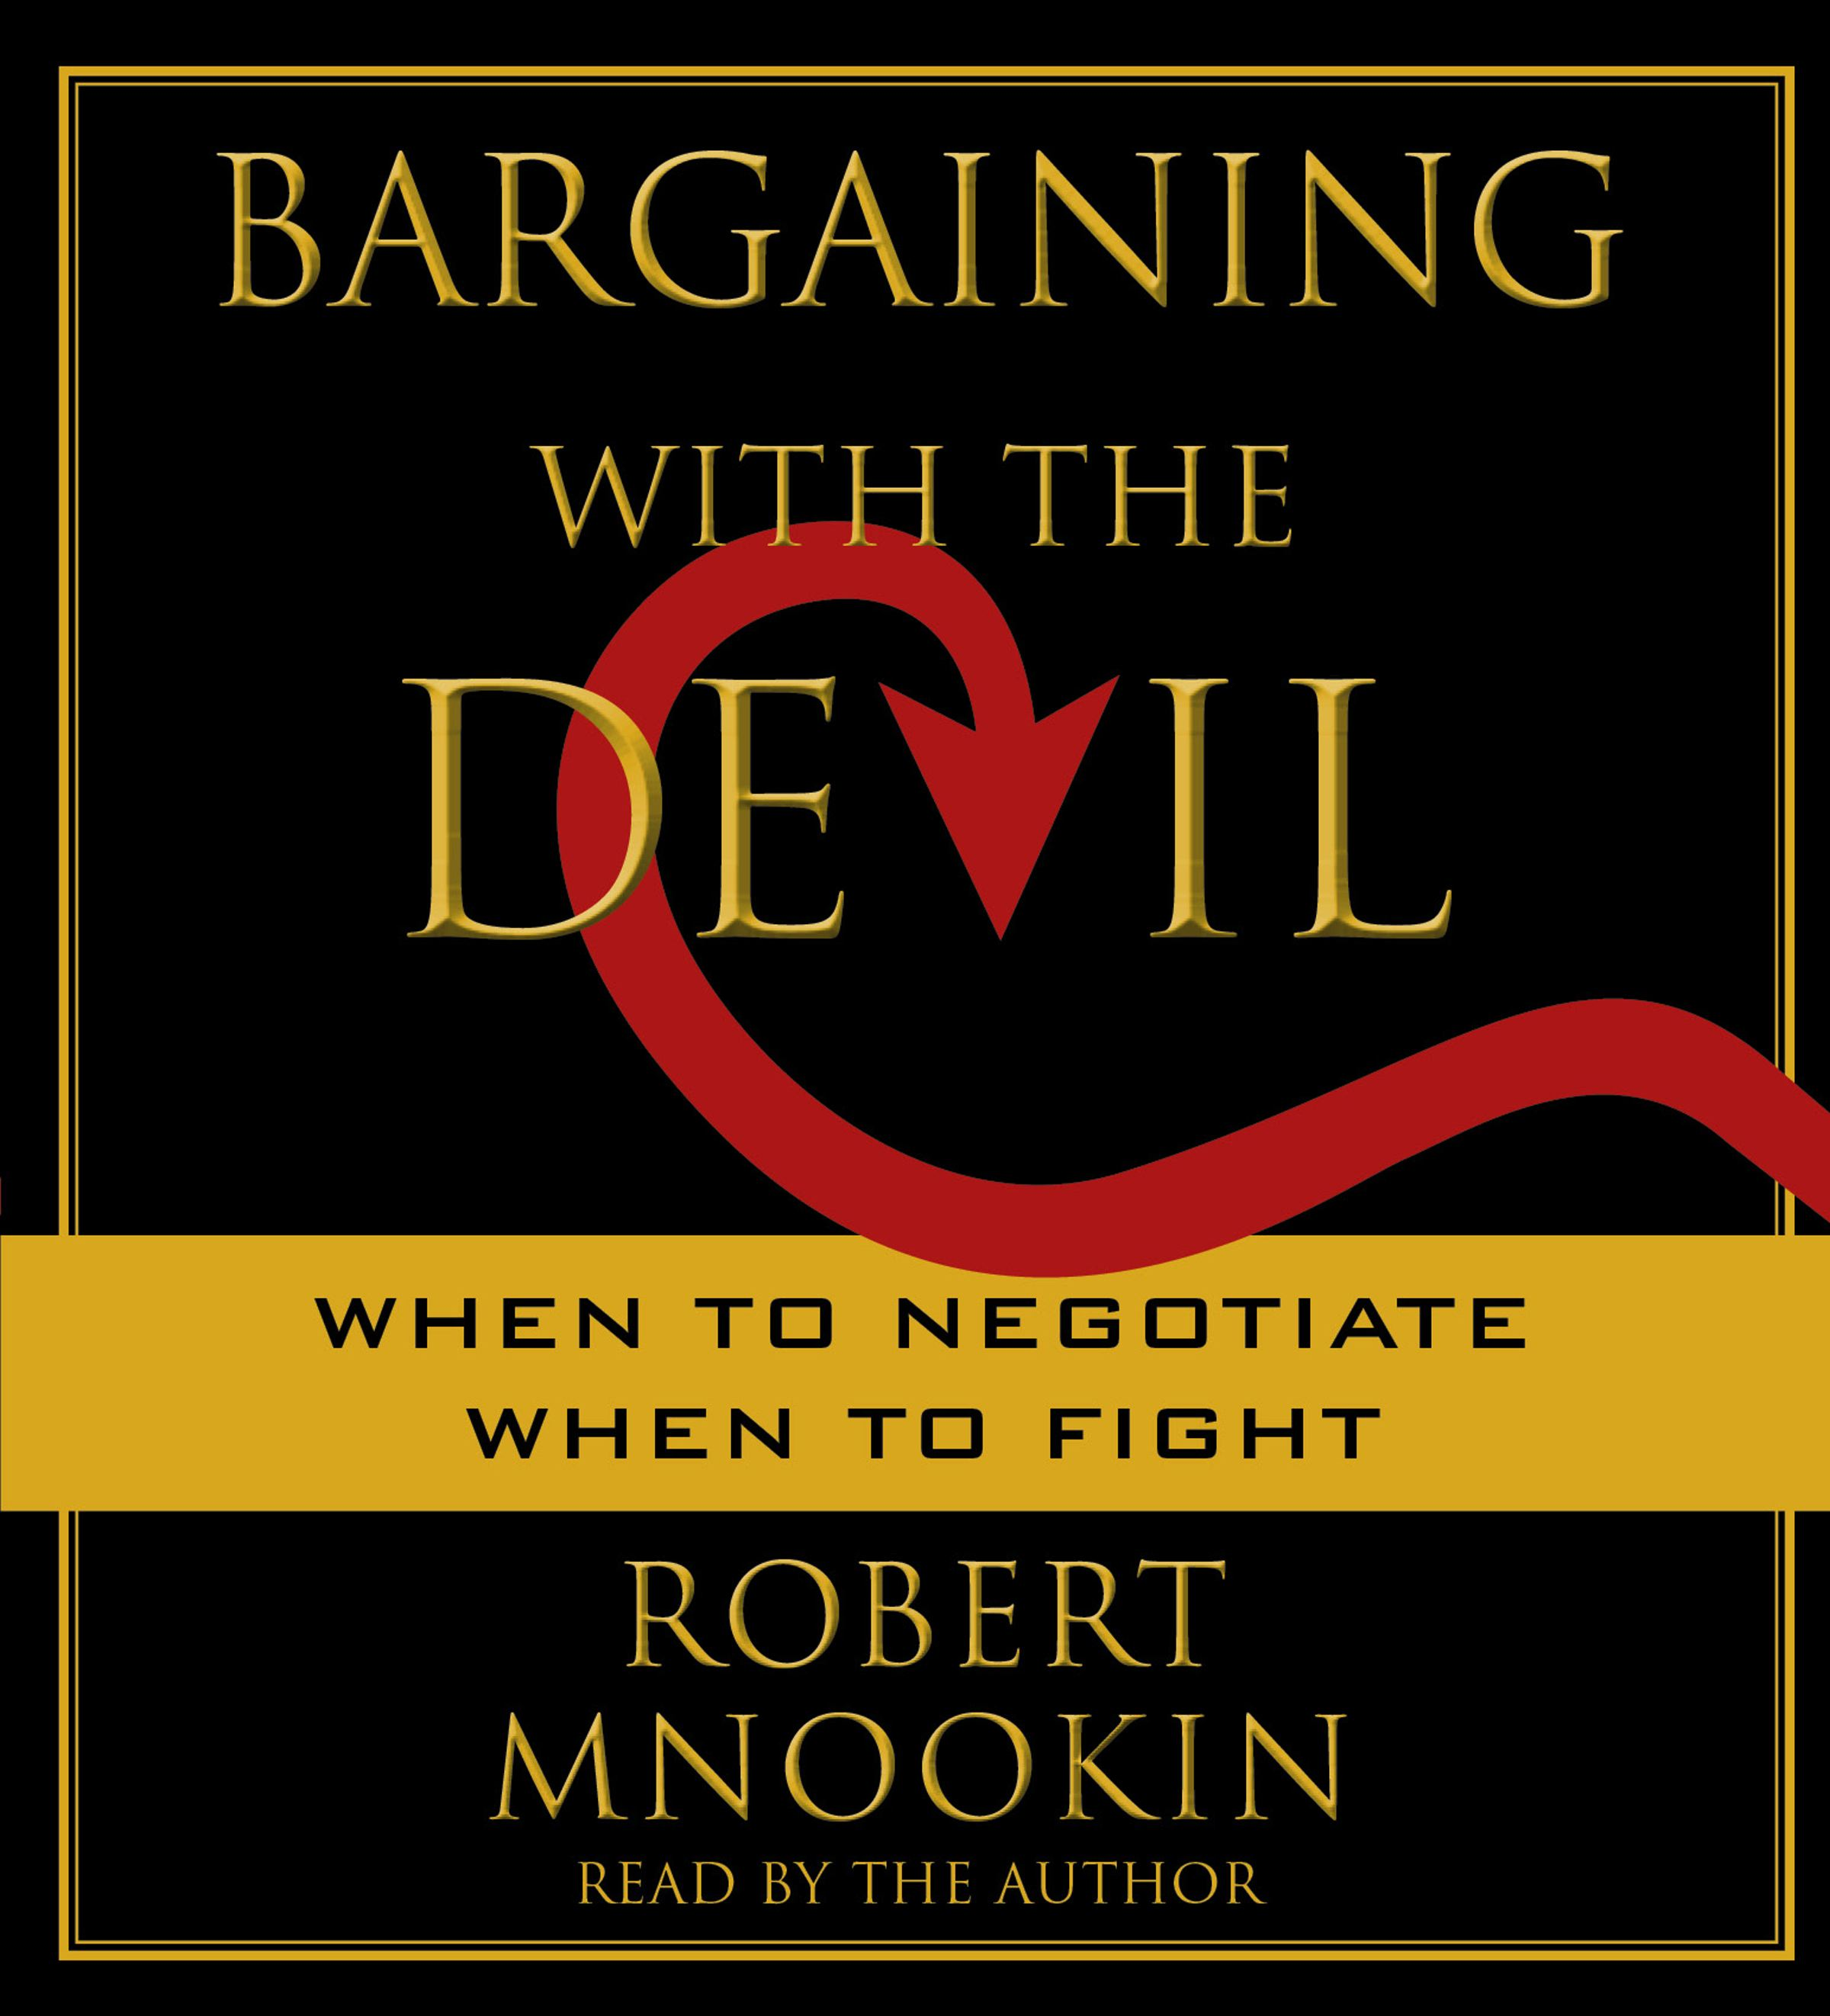 Bargaining with the devil 9781442304178 hr